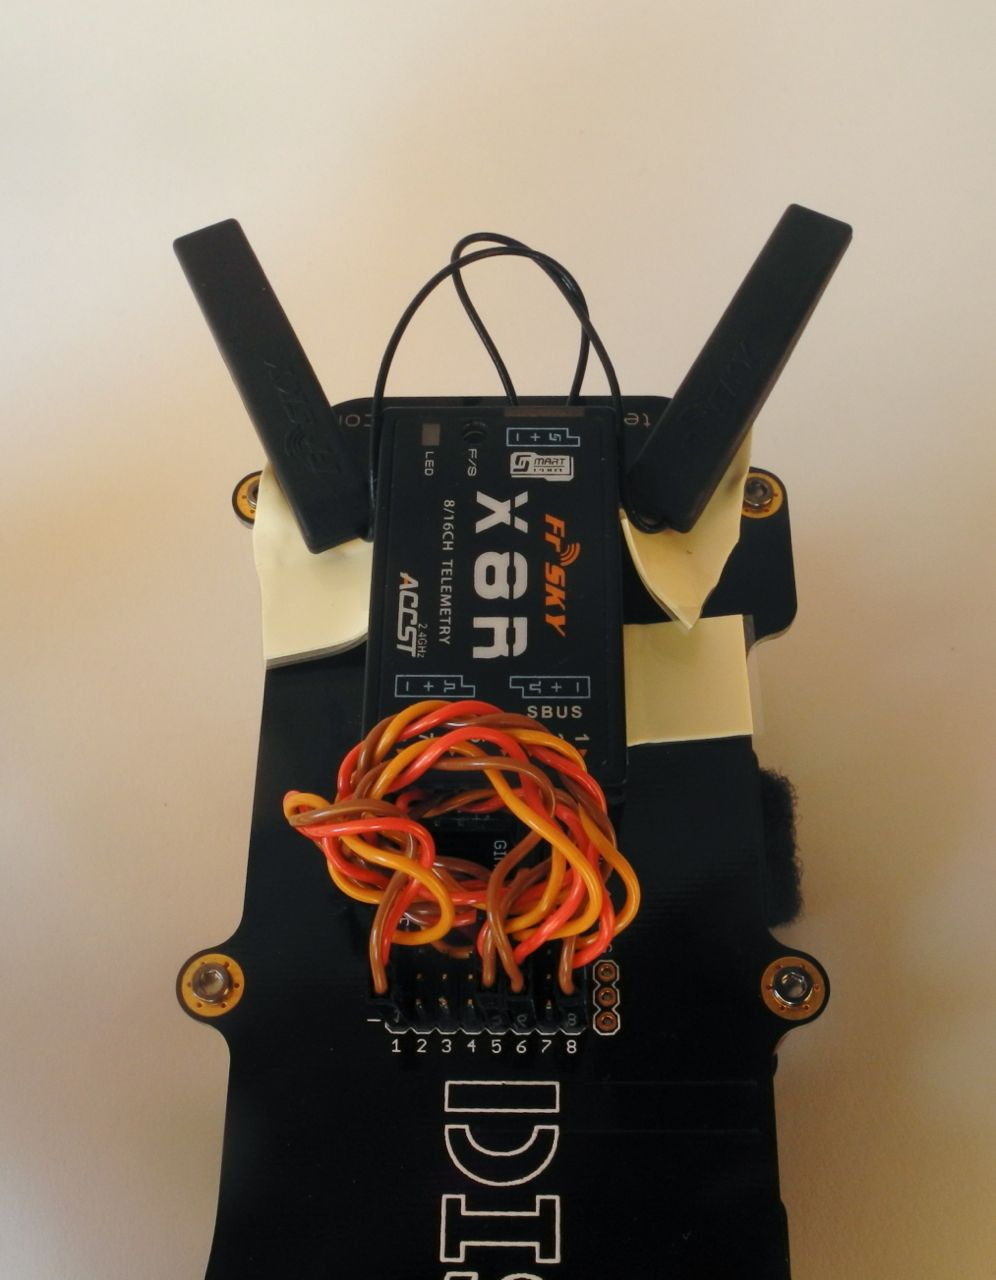 build log taranis and tbs discovery pro part 3 fpv blog backend of the discovery pro the frsky x8r receiver and the two pcb antennas